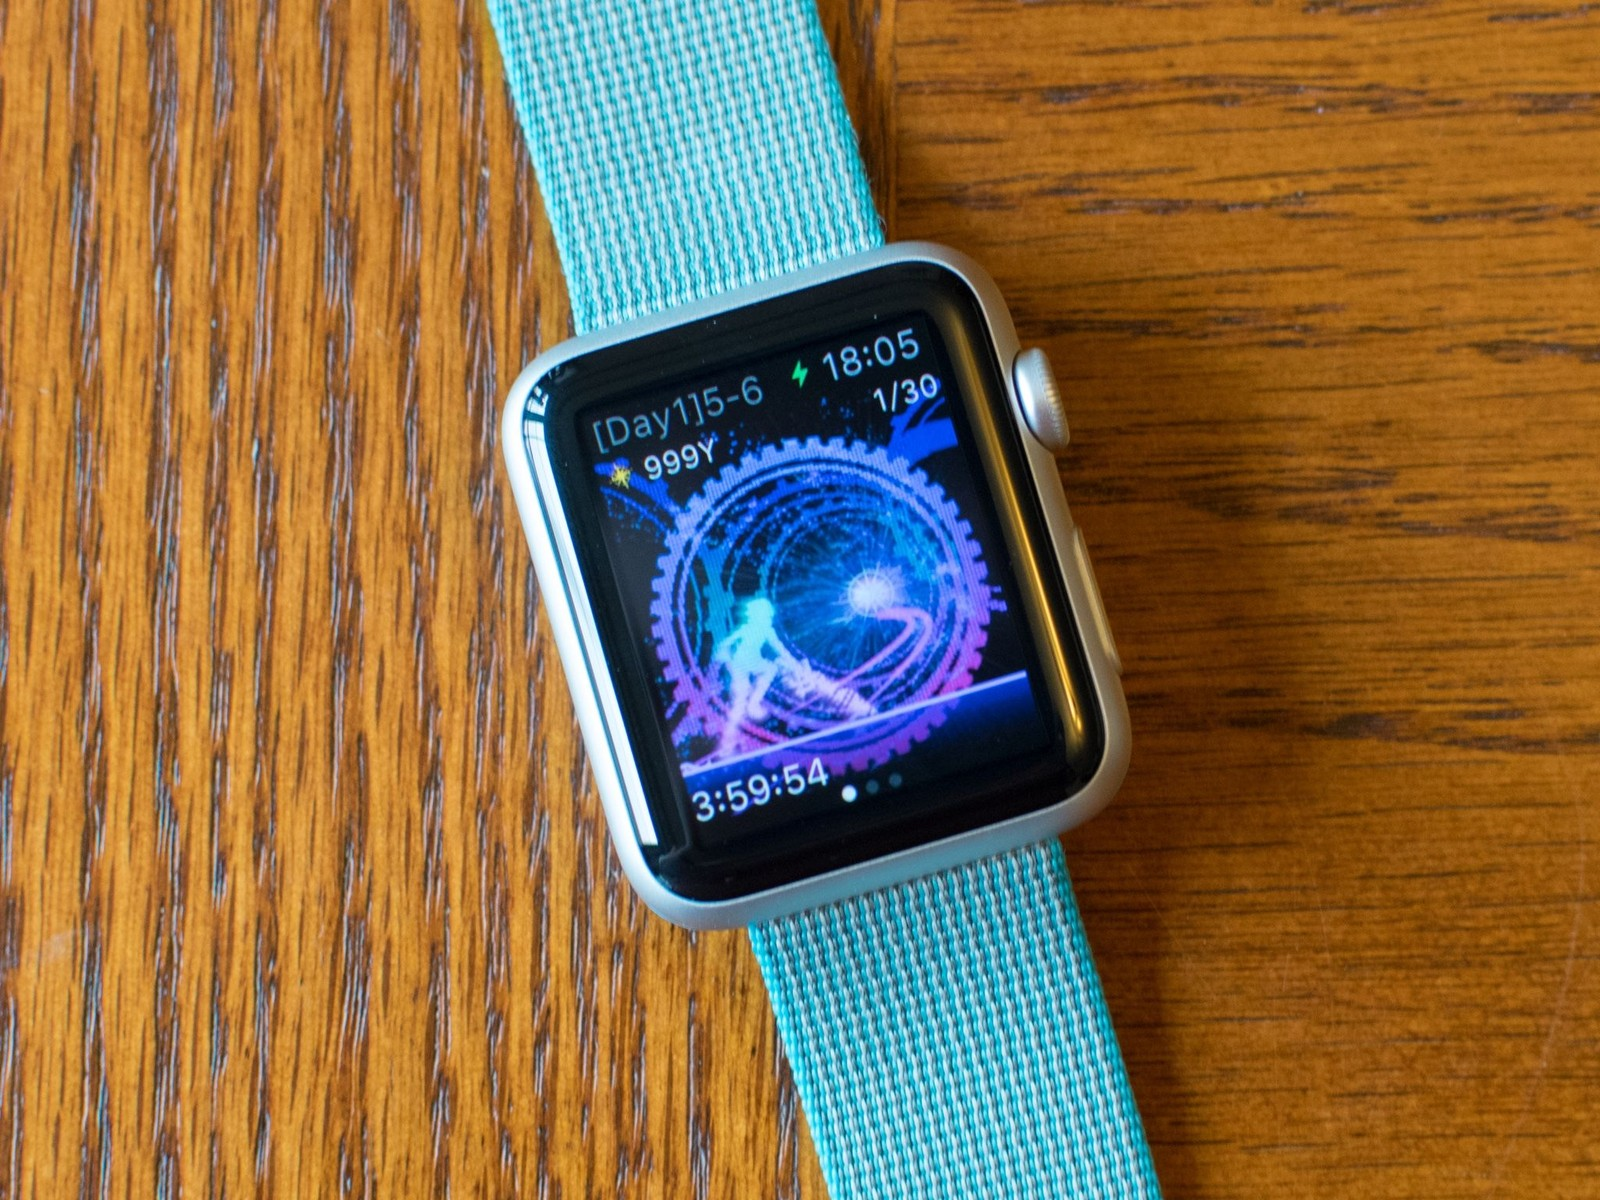 An Apple Watch is shown with the Cosmos rings wallpaper.